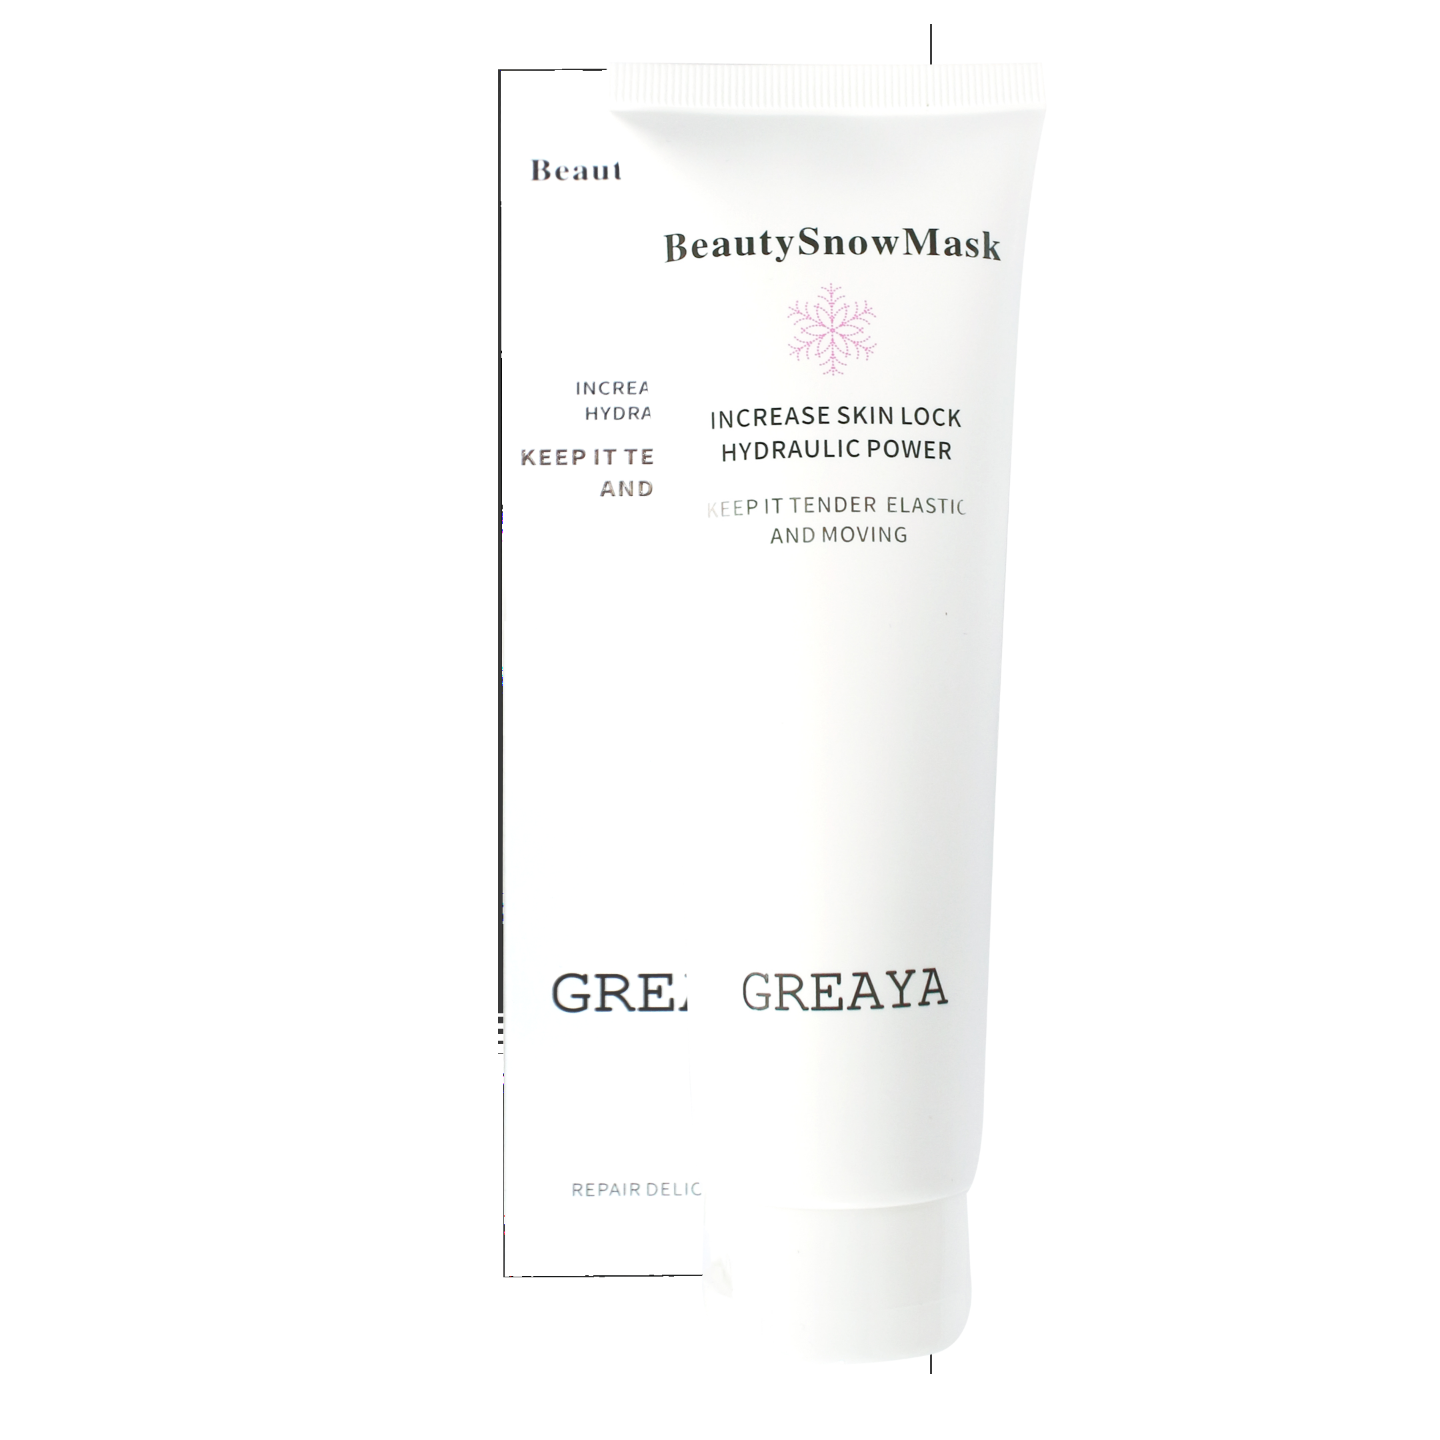 Beauty Snow Mask | GREAYA